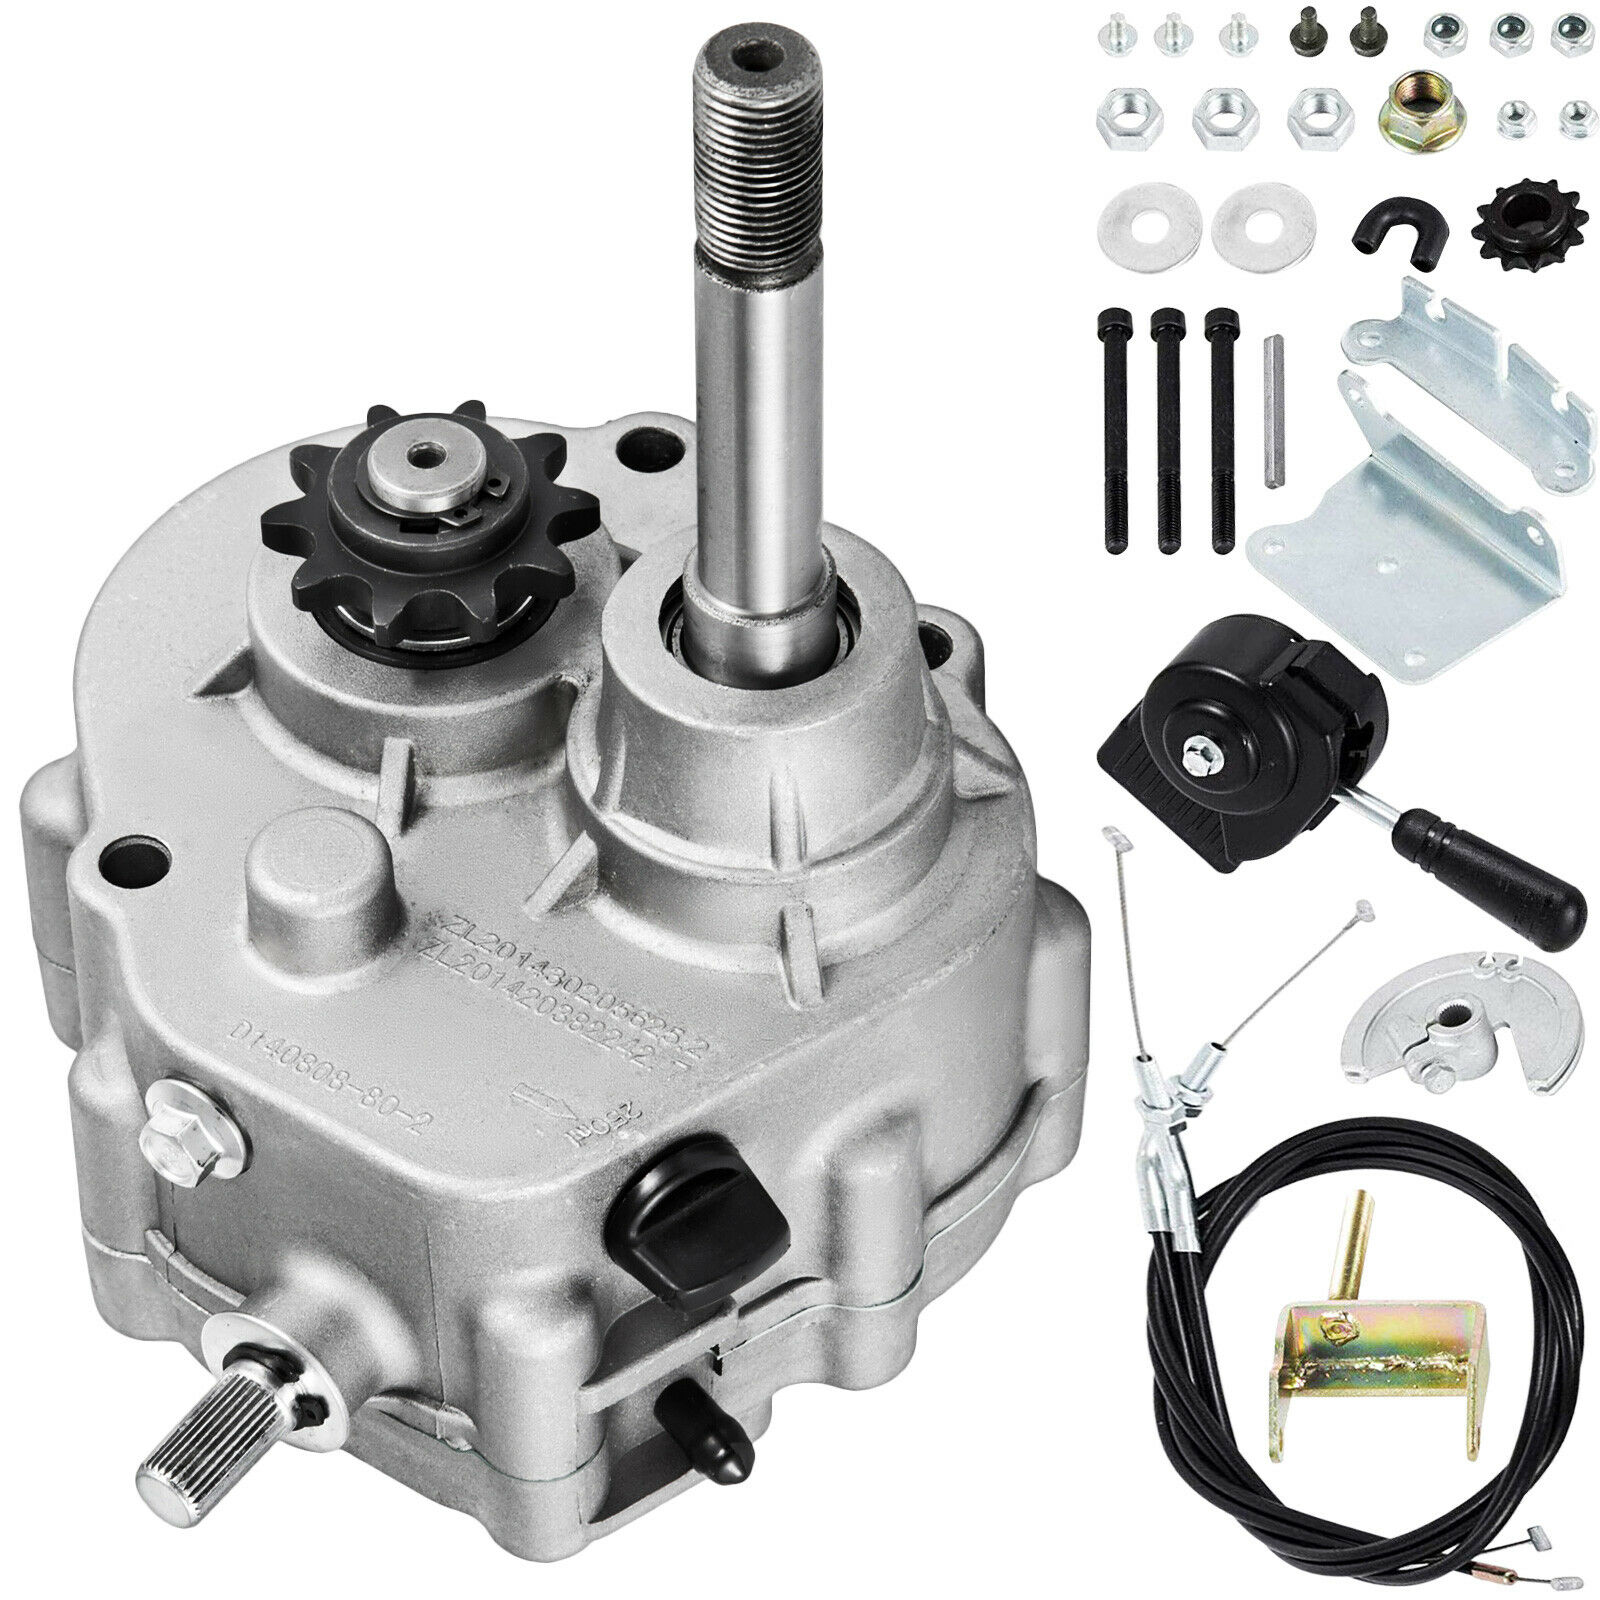 Go Kart Forward Reverse Gear Box Fits 2hp 13hp Engine 41p 10t Or Comet Torque Converter Off Road 1 Of 12only Available